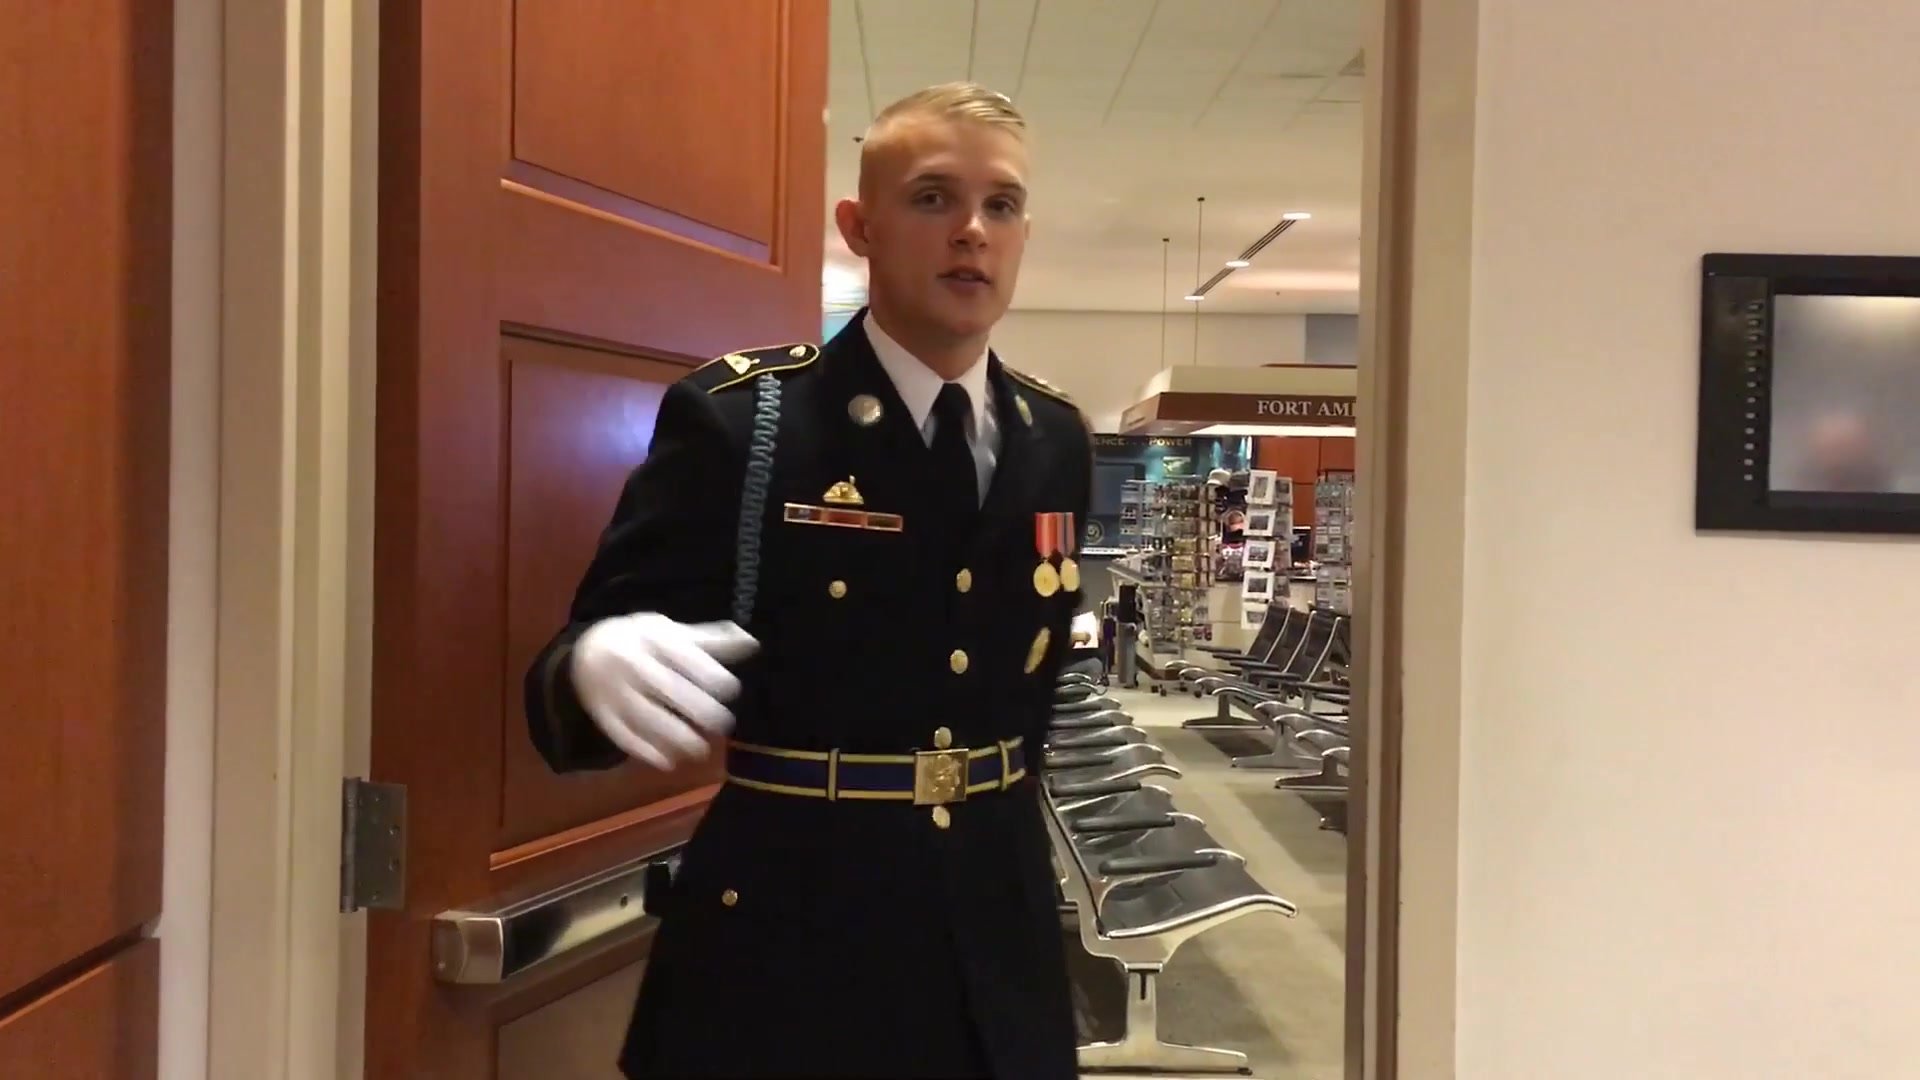 Soldiers, sailors, airmen, Marines and Coast Guardsmen assigned to their services' ceremonial units volunteer or are hand-picked to become Pentagon tour guides. Every working day, they lead groups of visitors into the Pentagon for in-depth tours to learn about the building's history and to see what it looks like inside.  Video By Army Staff Sgt. Vanessa Atchley